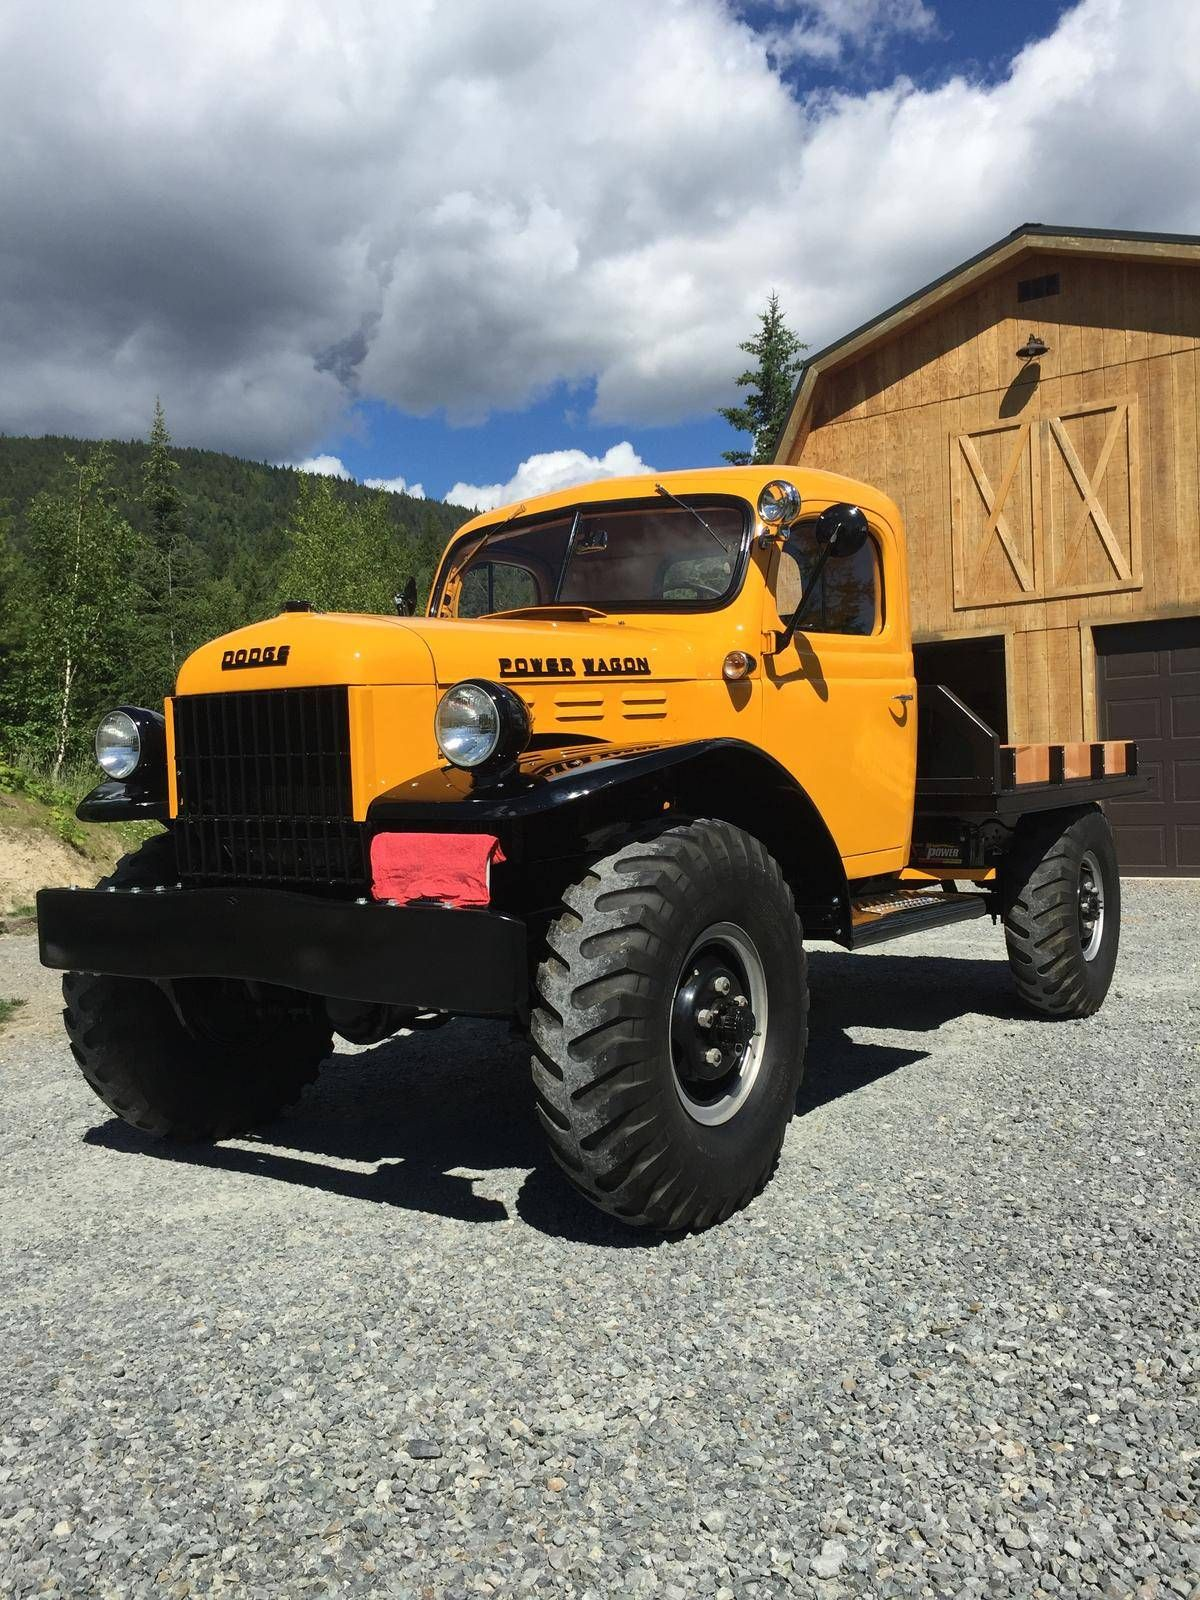 1947 Power Wagon Craigslist - Year of Clean Water